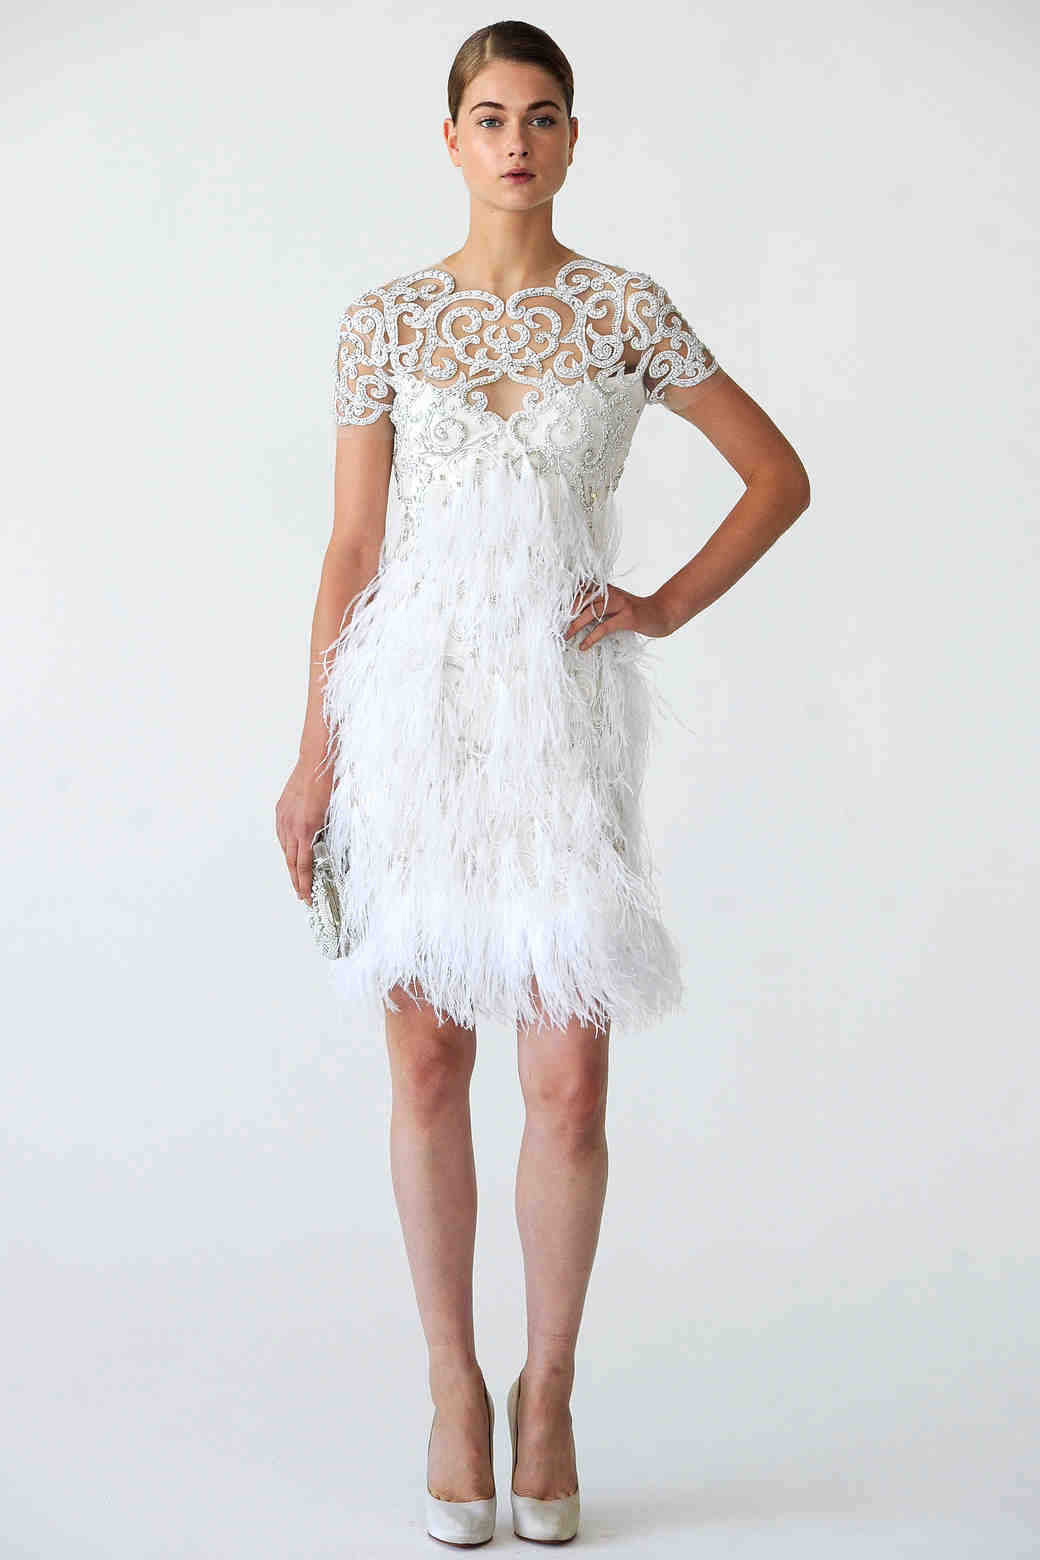 Glamorous Old Hollywood Style Wedding Dresses Fall 2012 Bridal Fashion Week